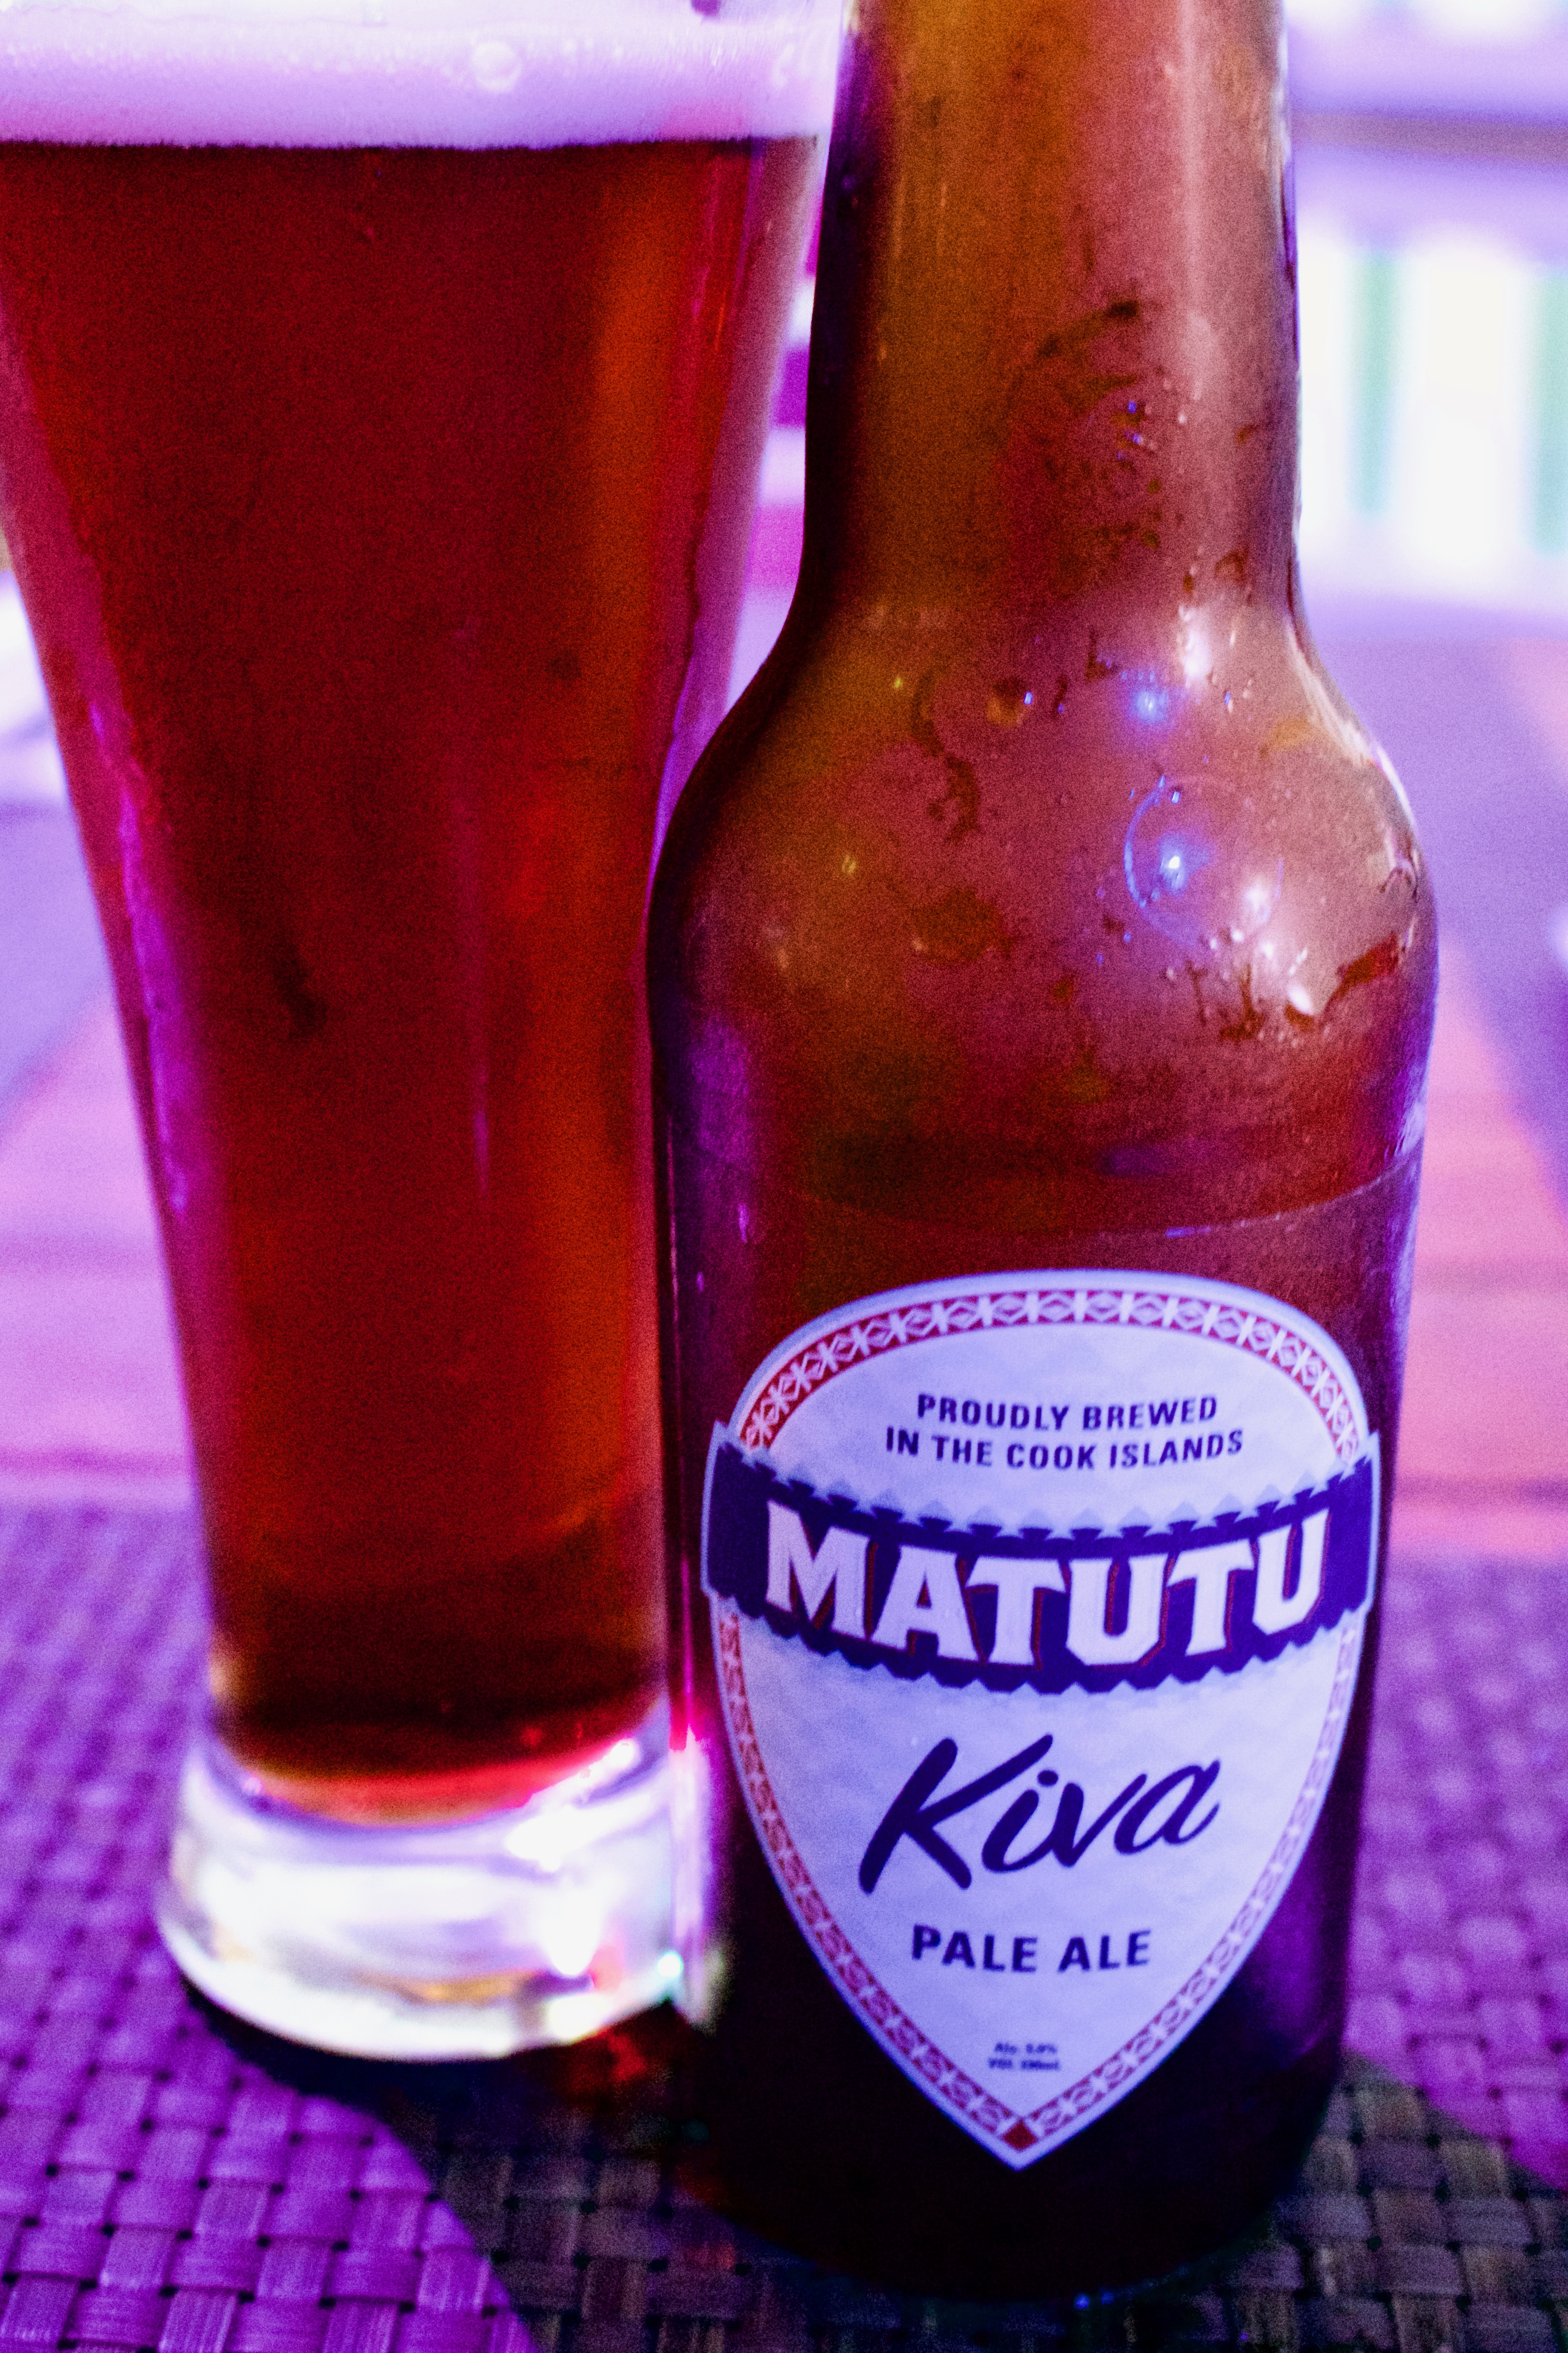 Matutu one of the 150 beers from aroud the world on the beer list